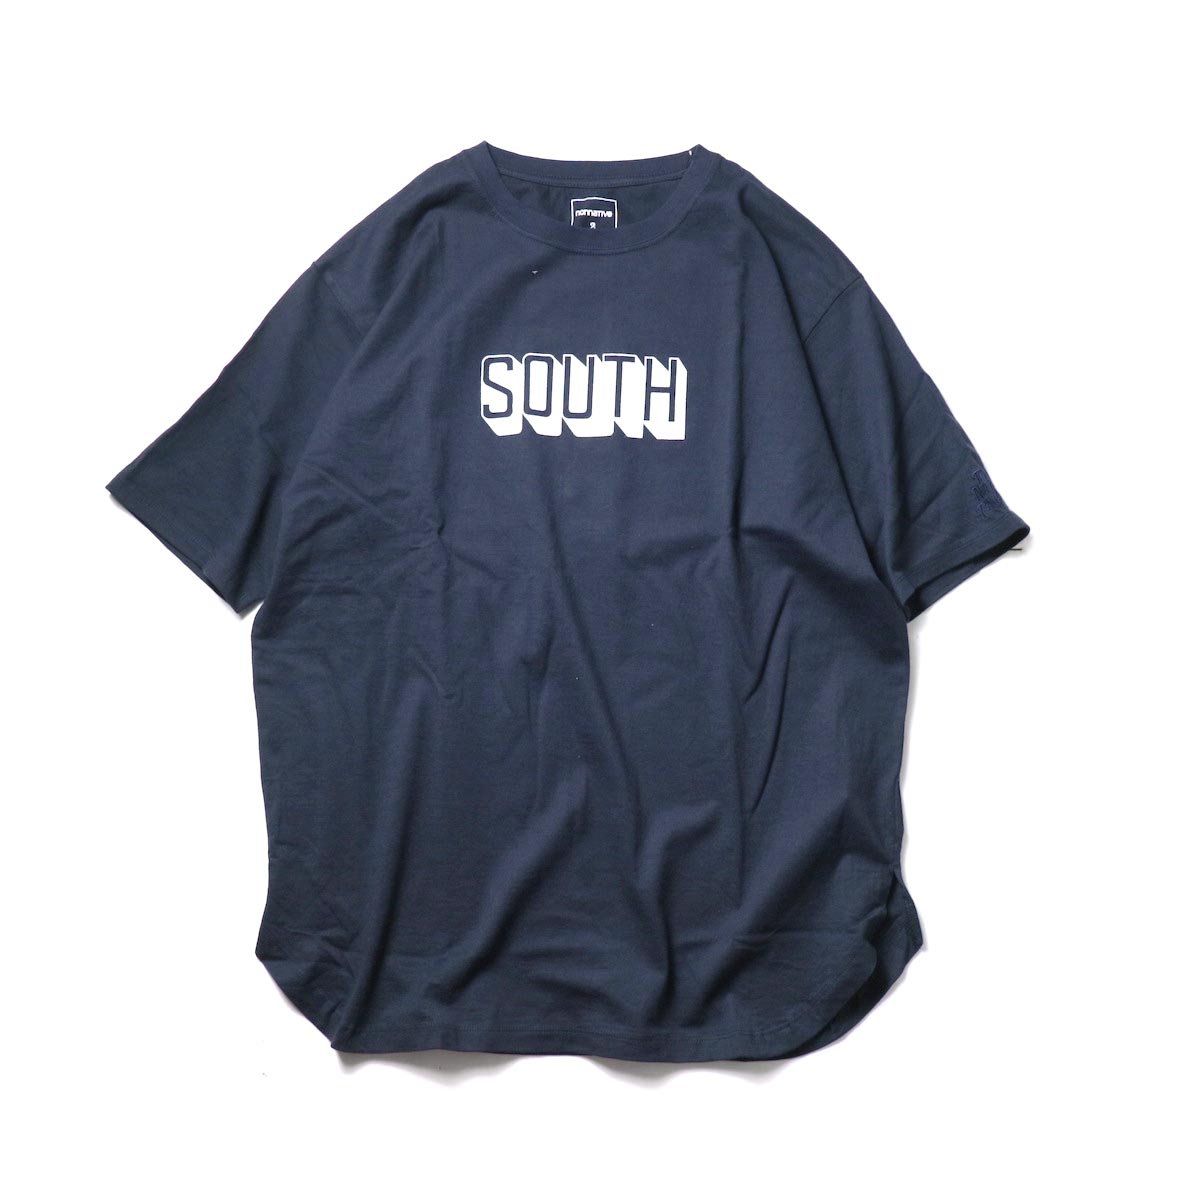 nonnative / DWELLER S/S TEE 'SOUTH' by LORD ECHO (Navy)